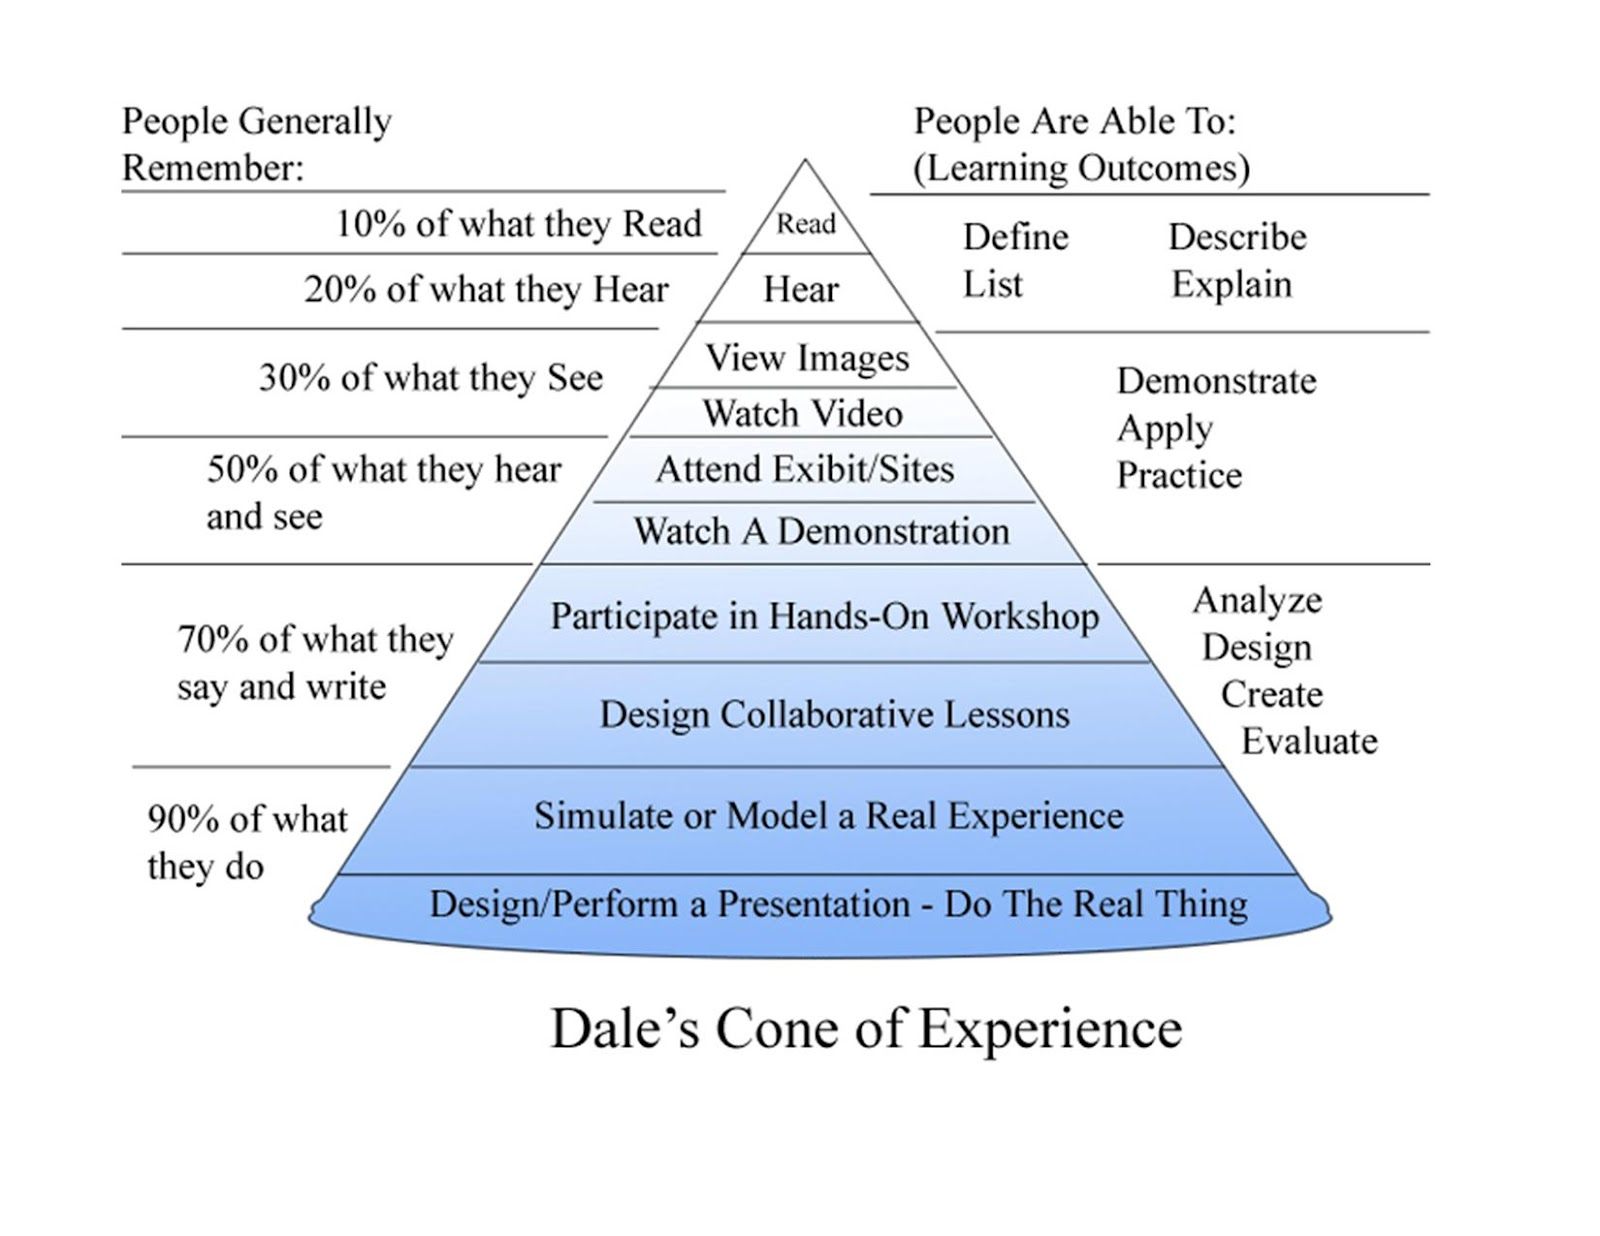 dales cone of experience marketing psychology